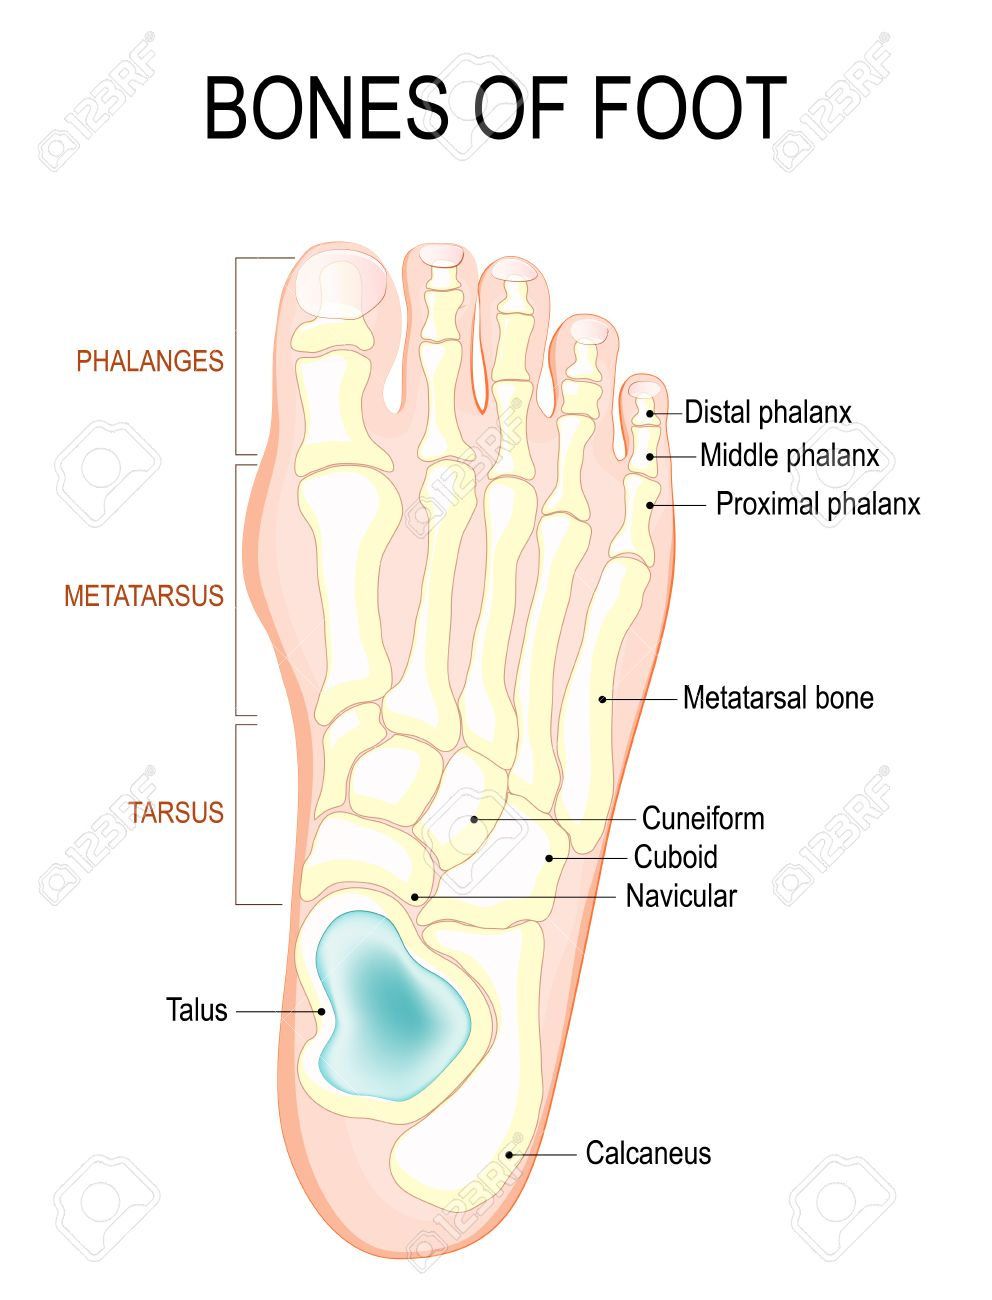 bones of foot. human anatomy. the diagram shows the placement.. royalty  free cliparts, vectors, and stock illustration. image 84263854.  123rf.com